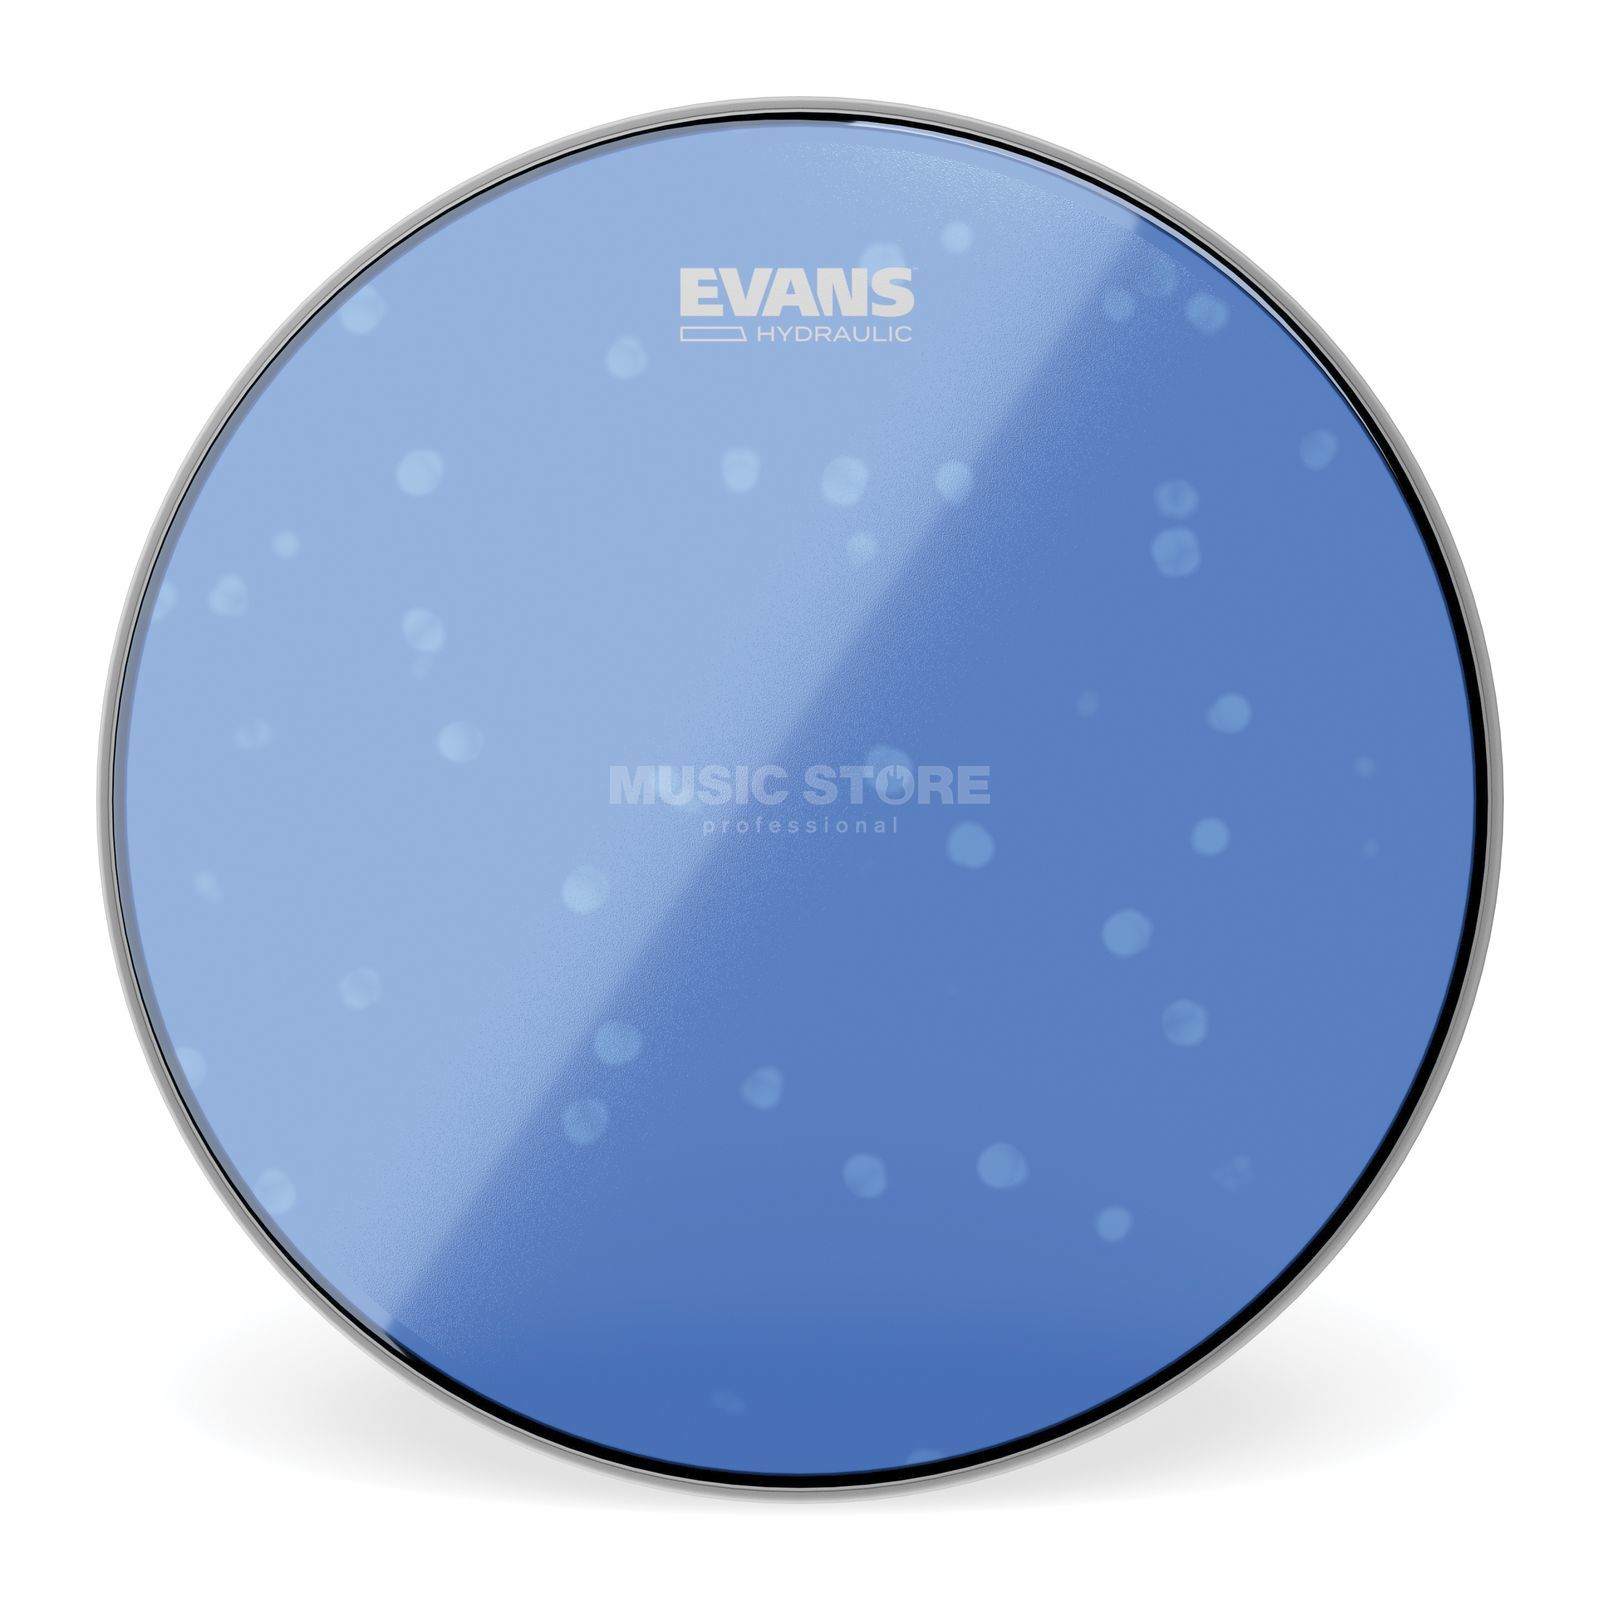 "Evans Hydraulic Blue 10"", TT10HB, Tom Batter Product Image"